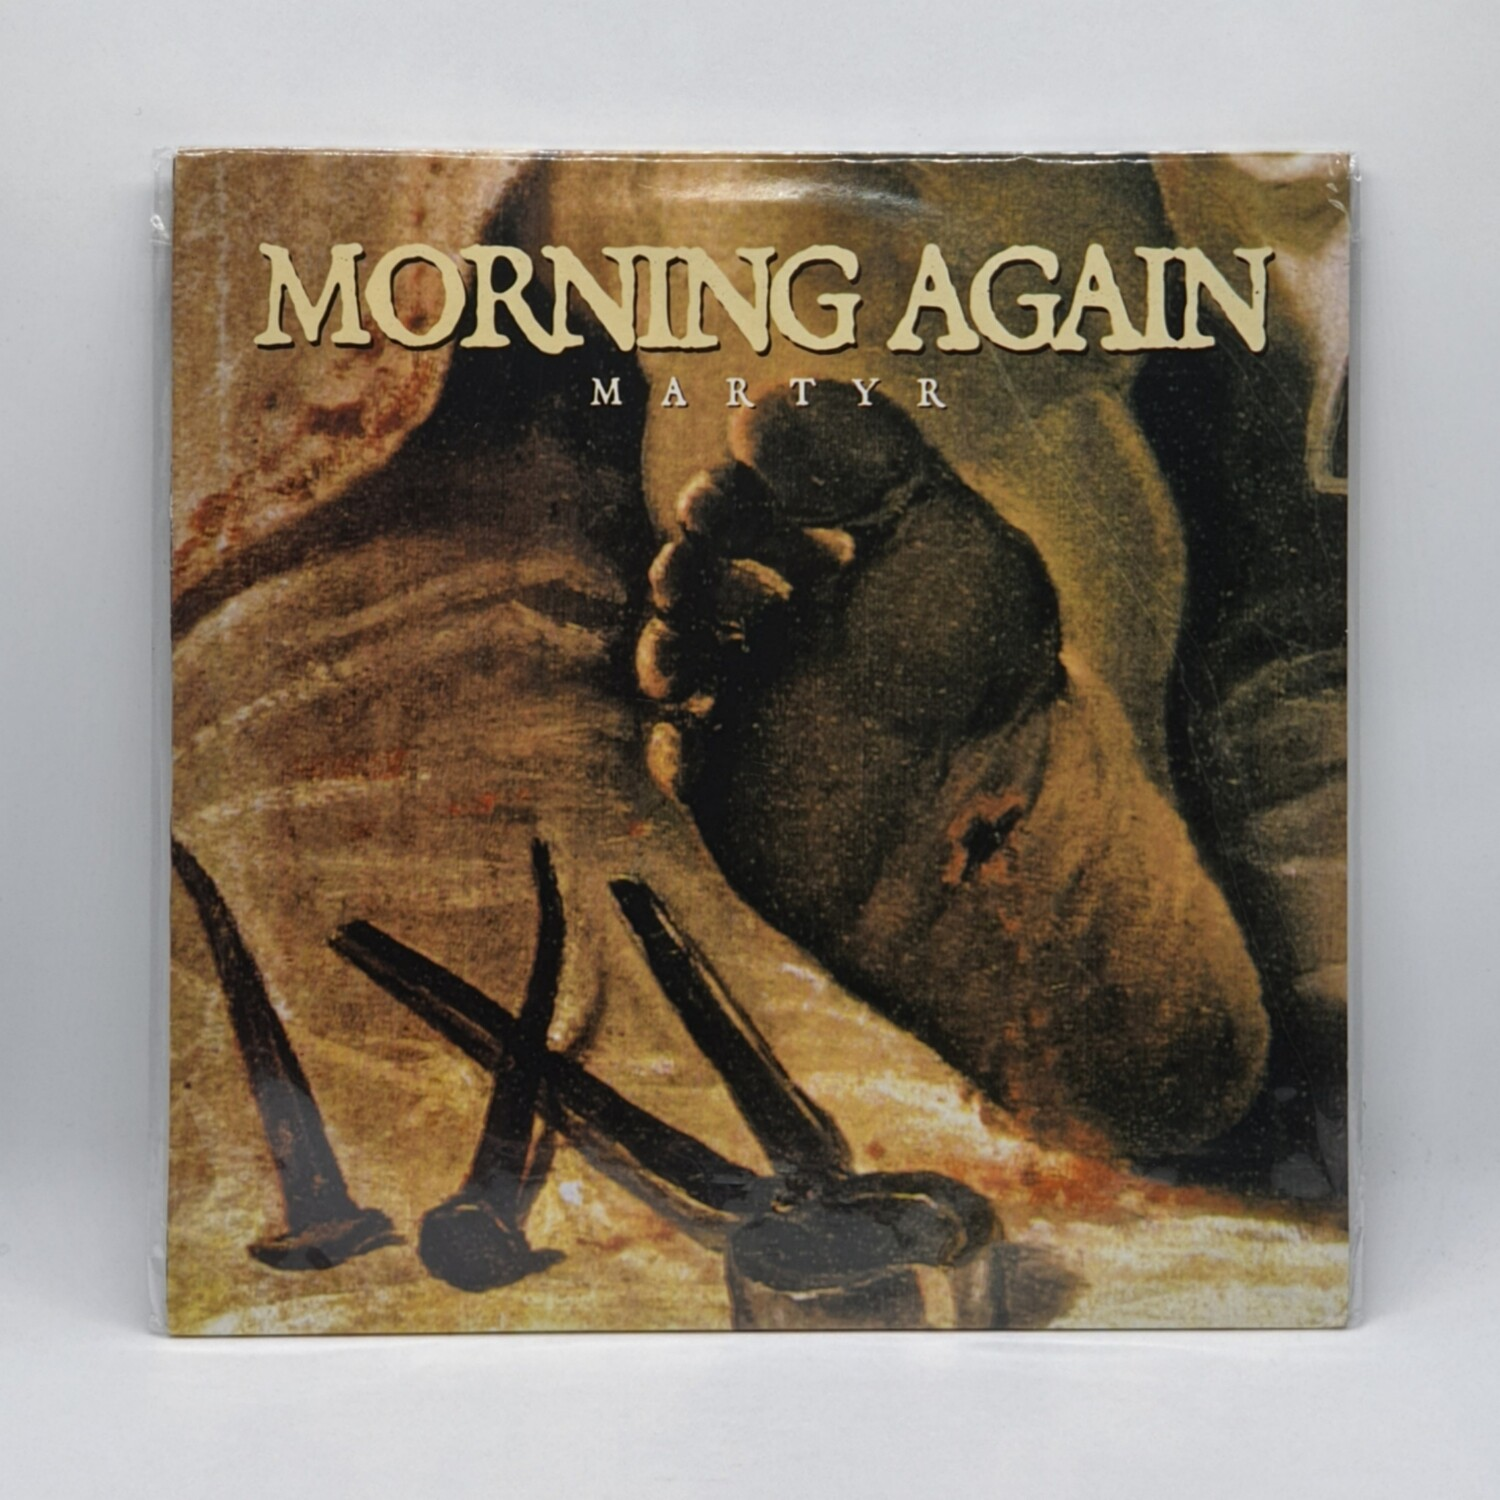 MORNING AGAIN -MARTYR- LP